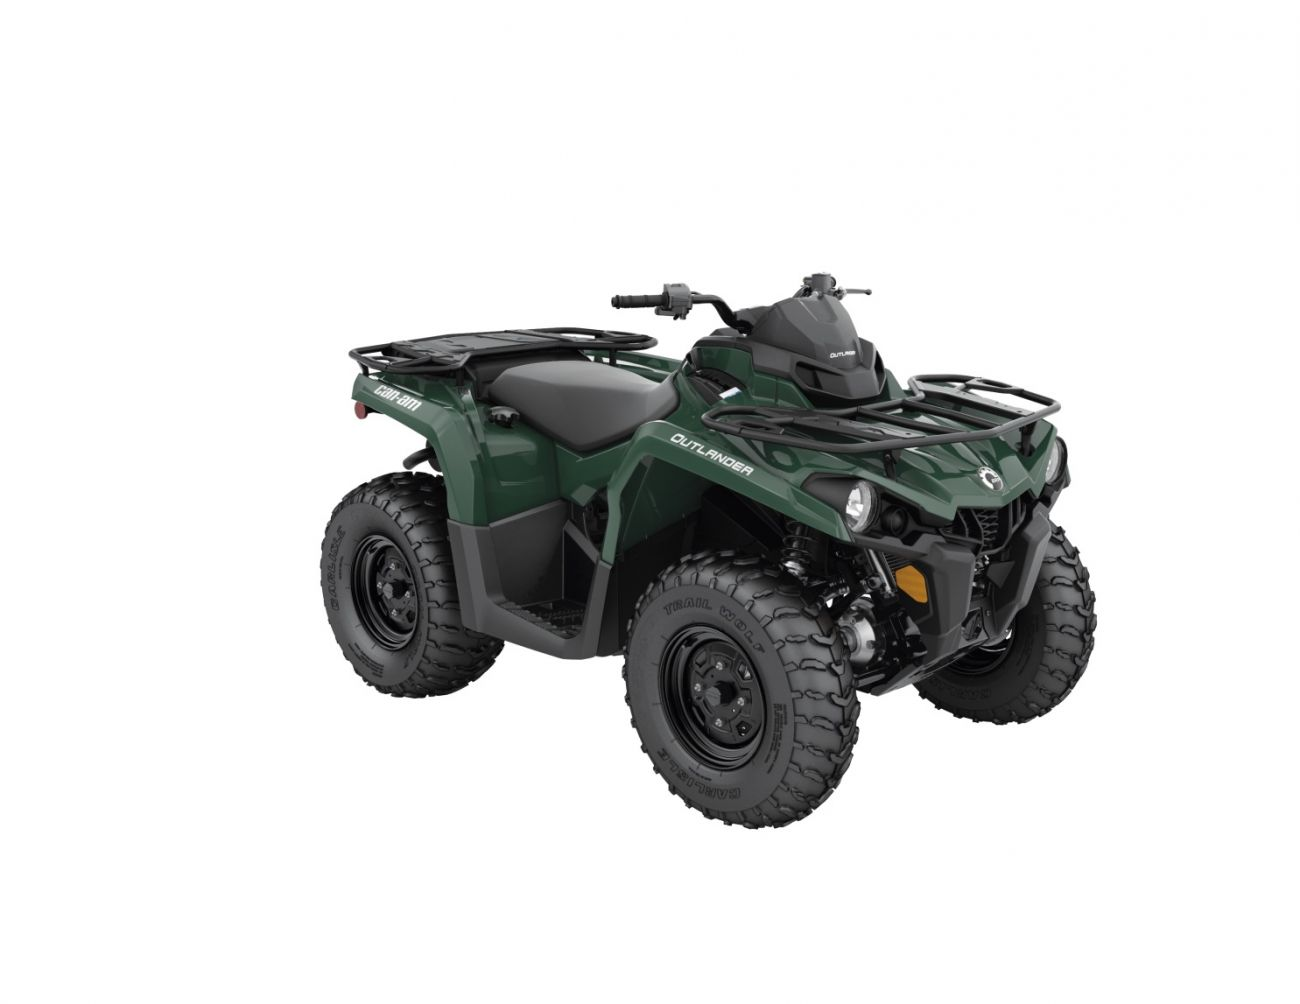 POWERSPORTS CANAM ORV_IMAGERY OUTLANDER MY21 ORV_ATV_MY21_OUT_DPS_450_Tundr_120720102923_lowres